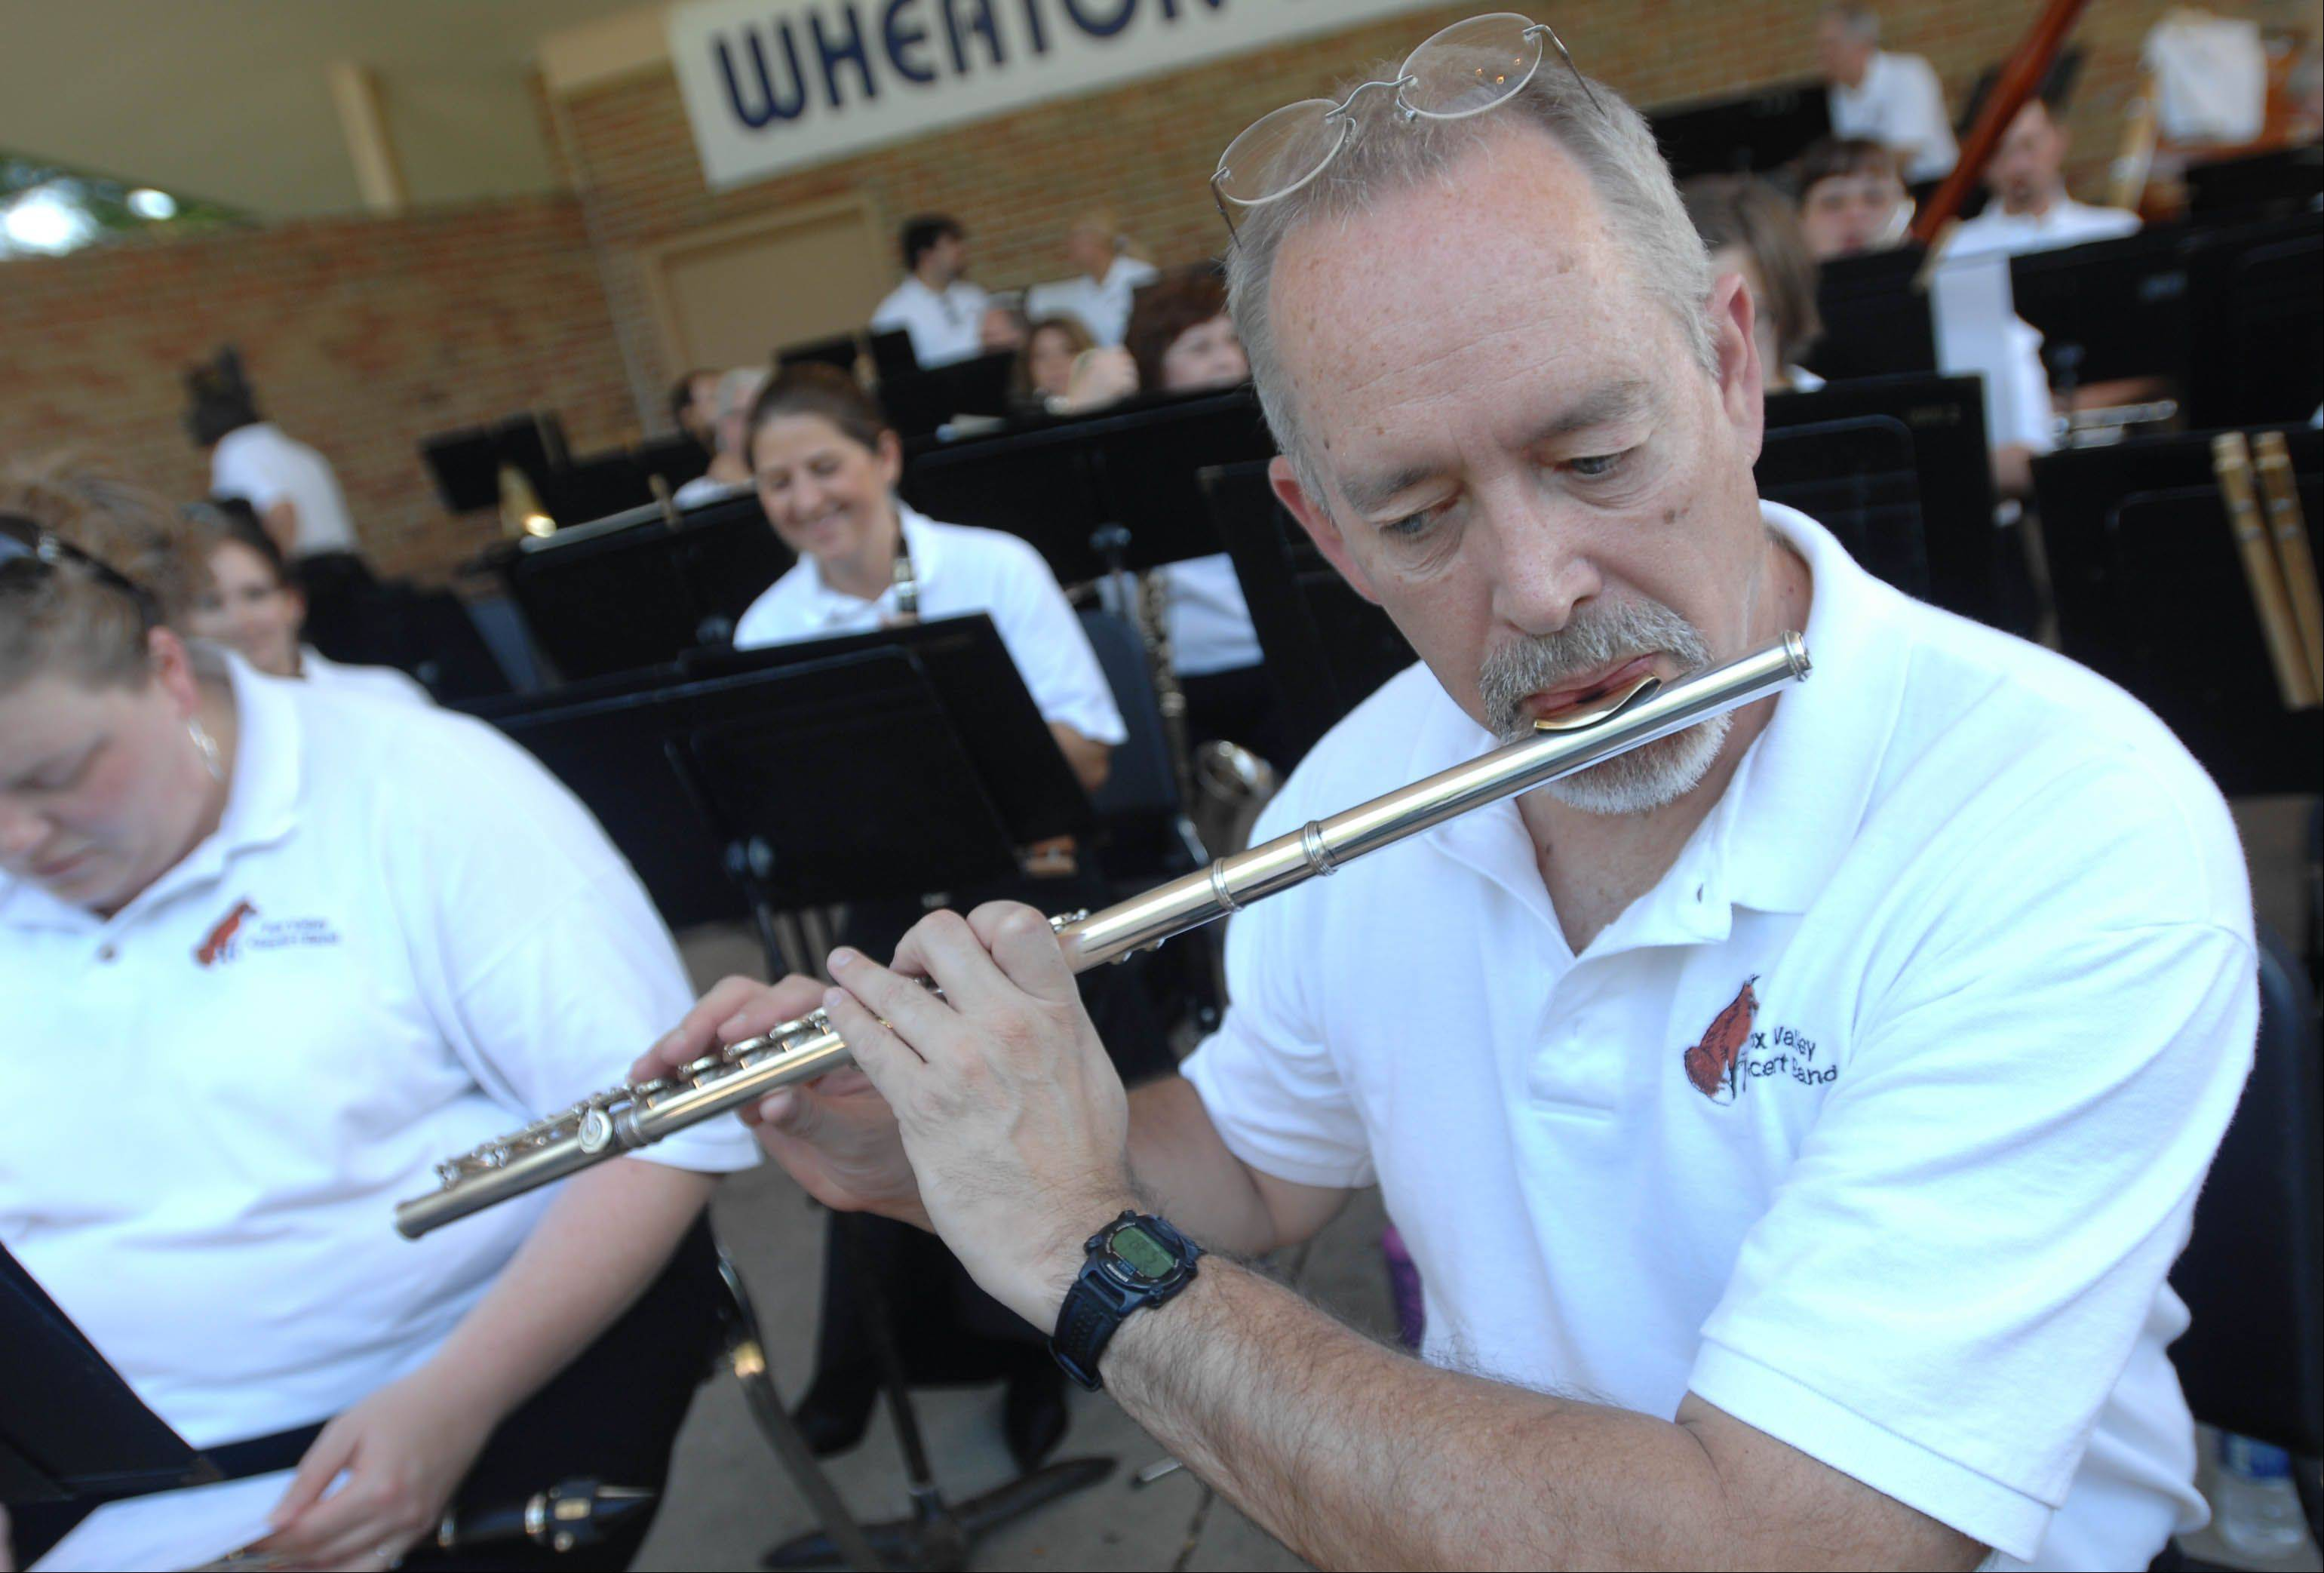 The Fox Valley Concert Band returns to the Wheaton Band Festival Saturday night.